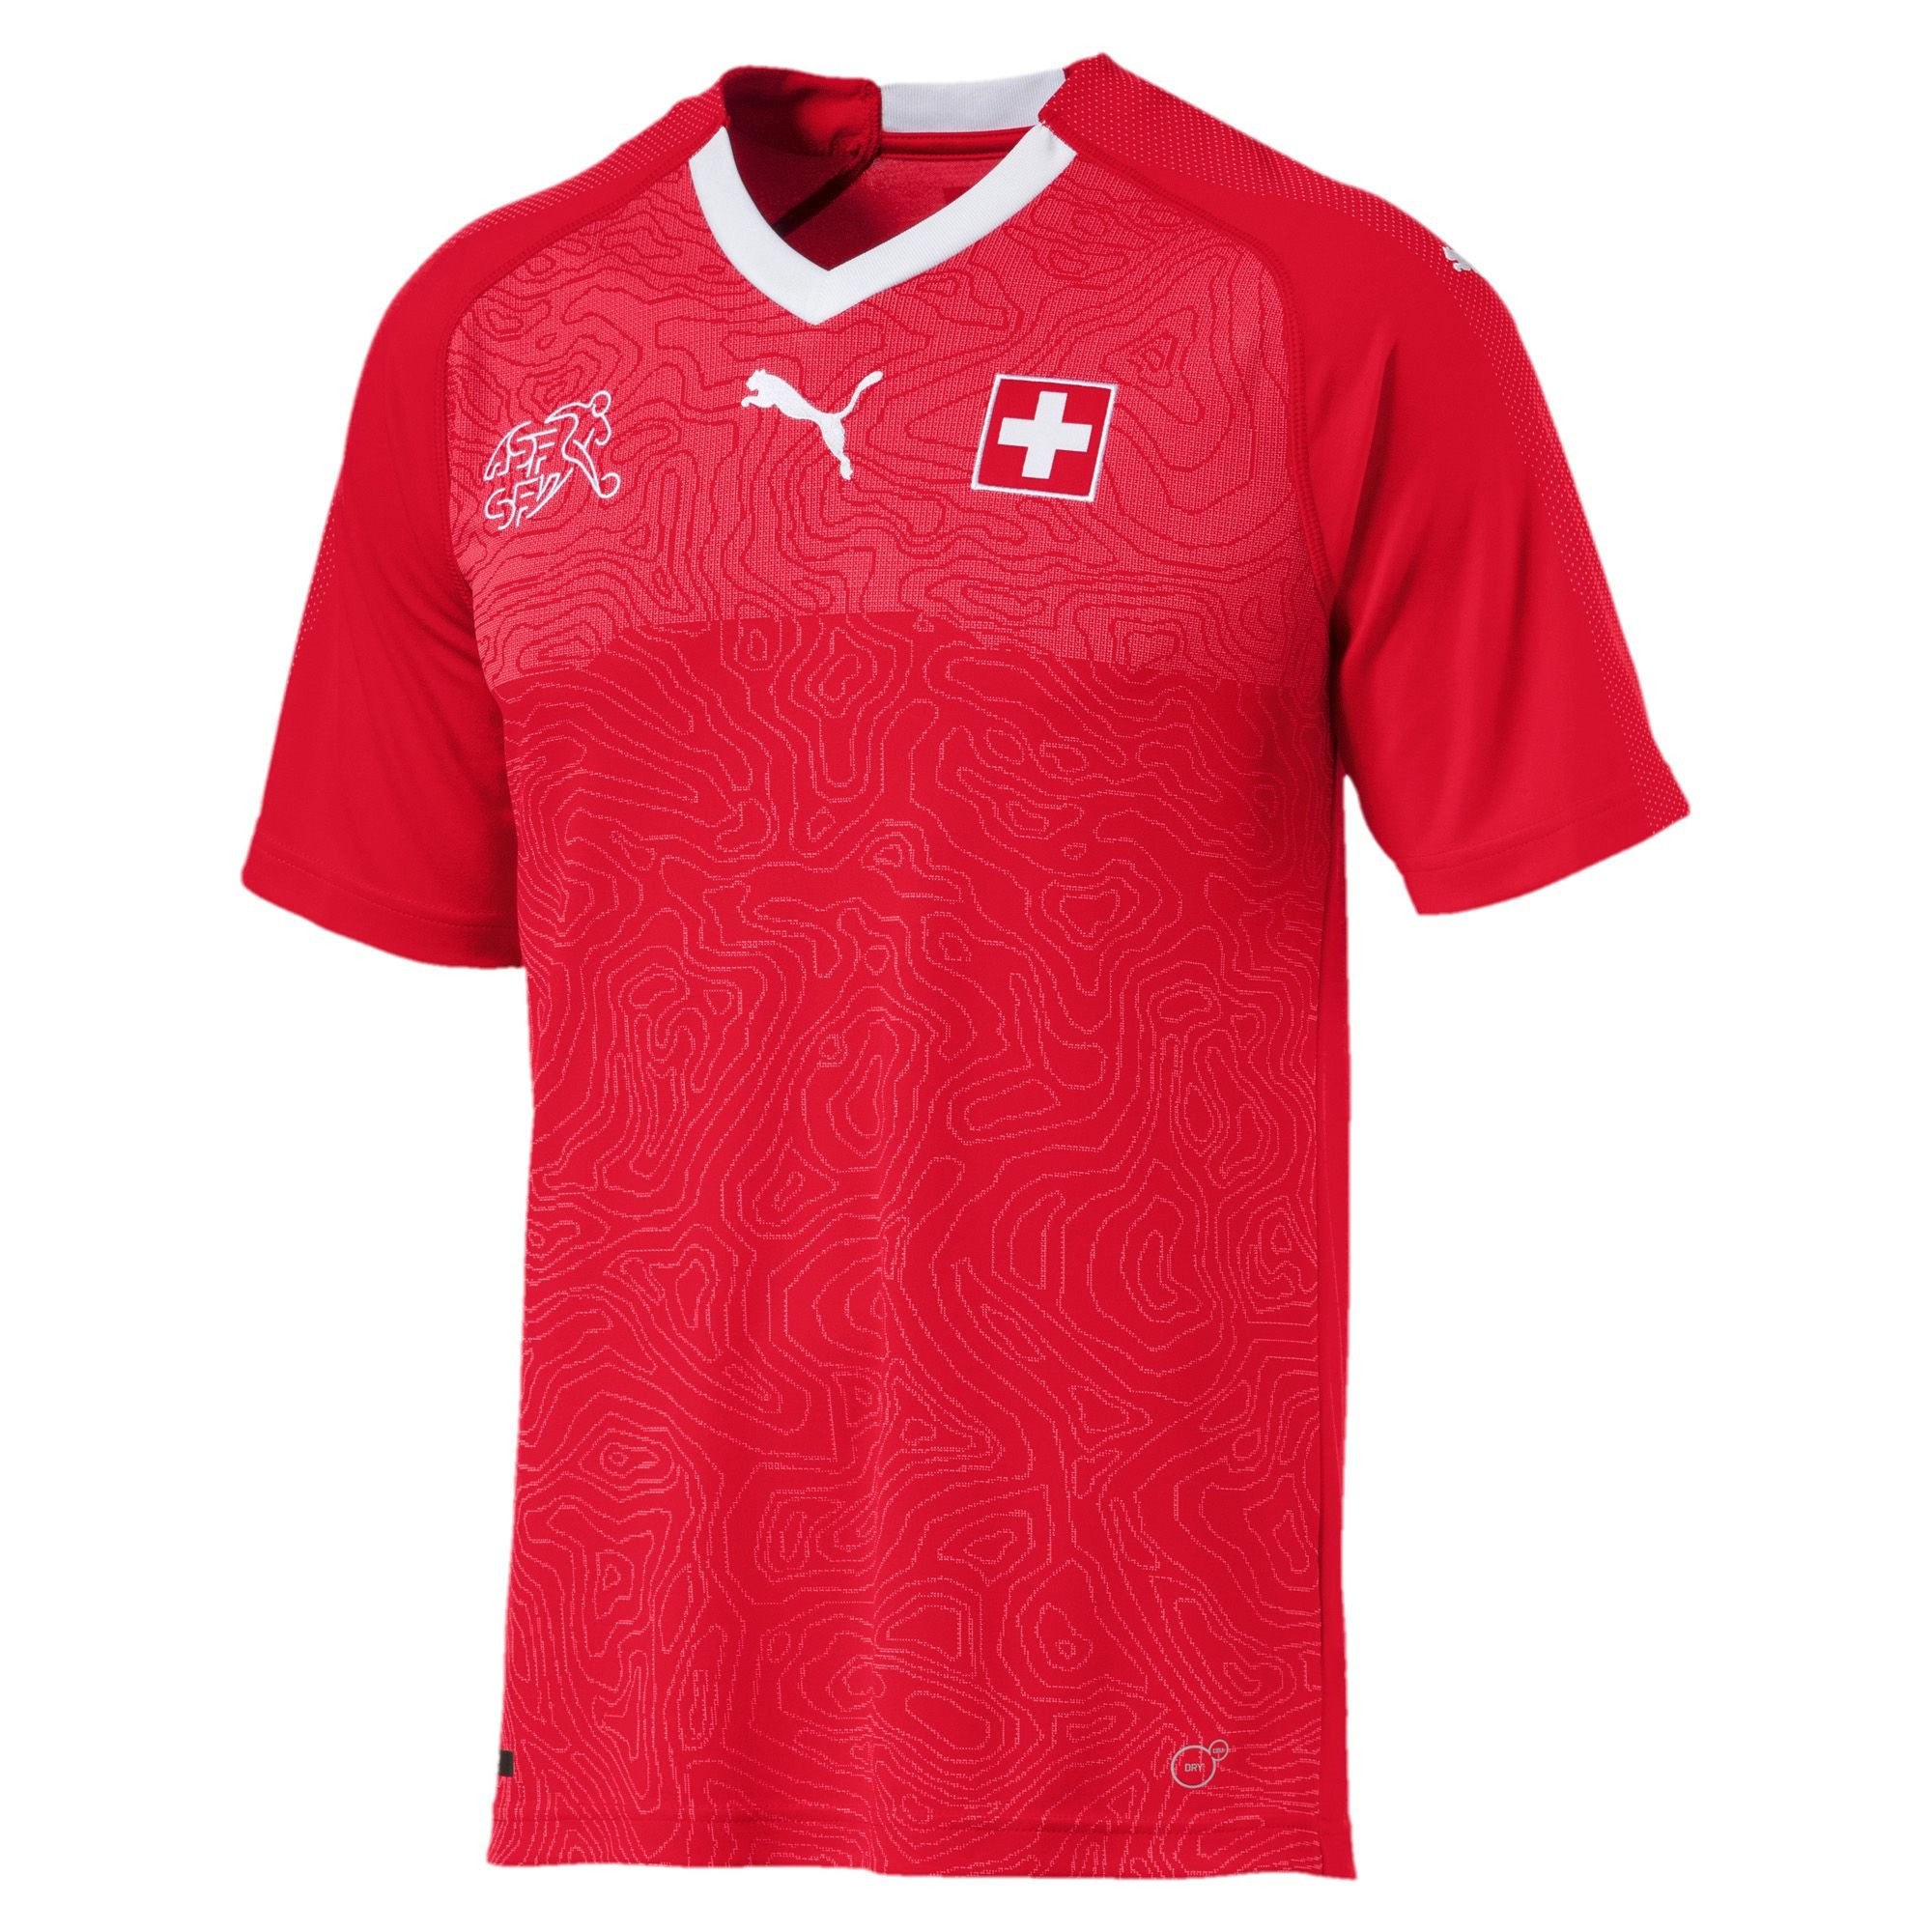 Swiss football kit